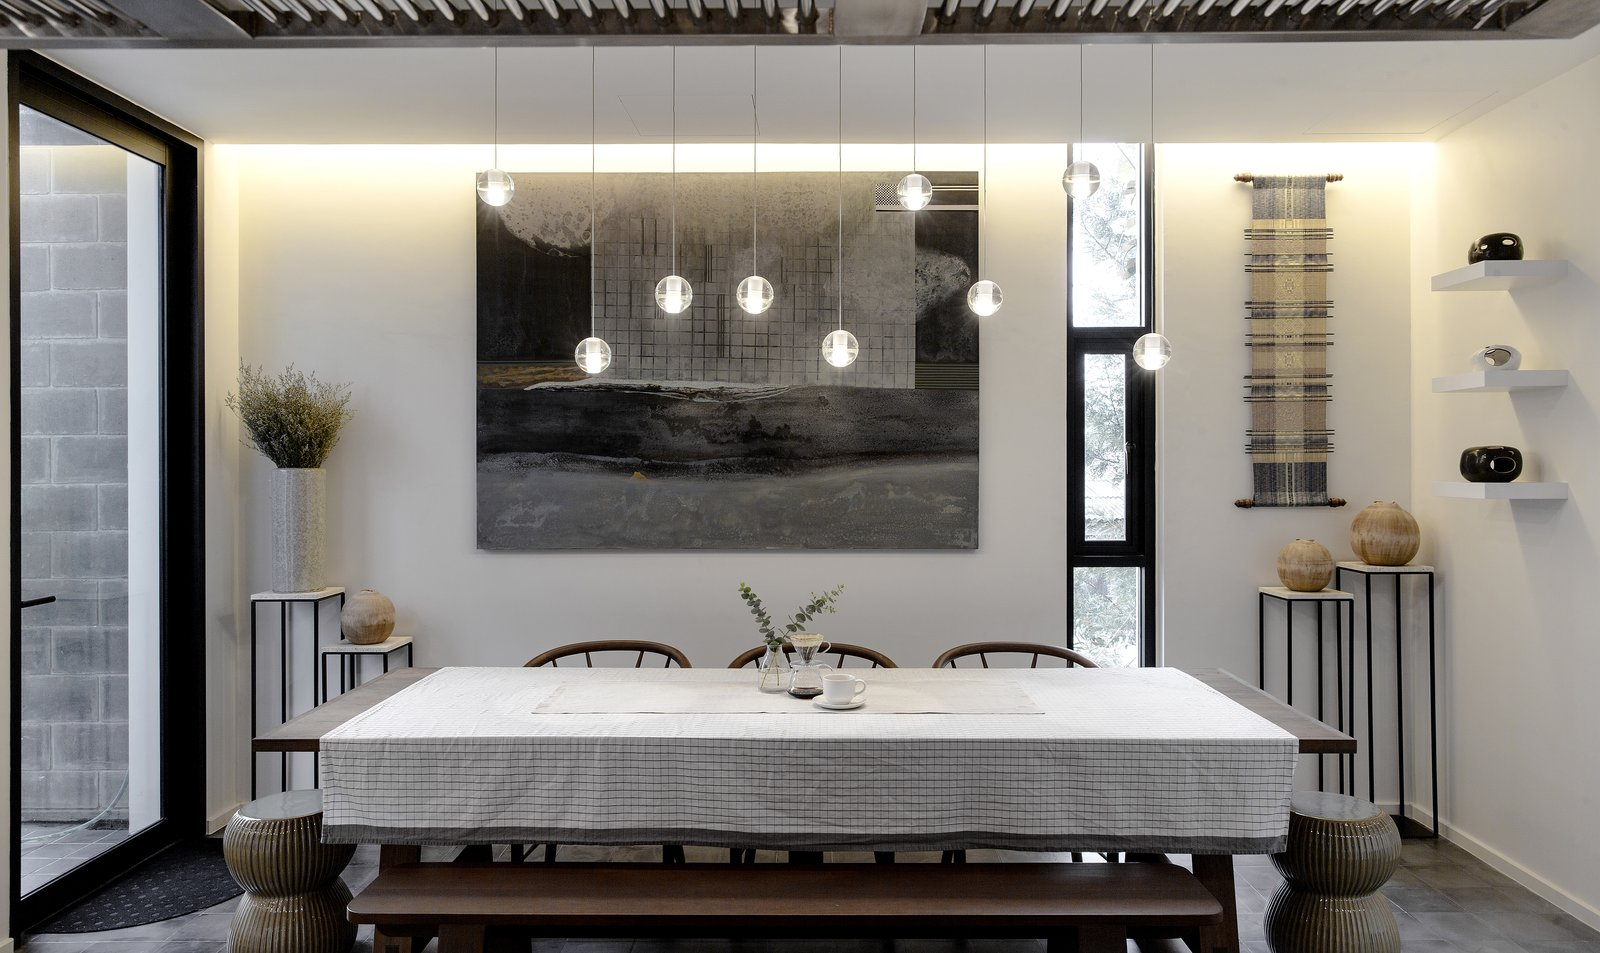 Dining Room, Table, Bench, Chair, Recessed Lighting, Pendant Lighting, and Ceramic Tile Floor  Huamark 09